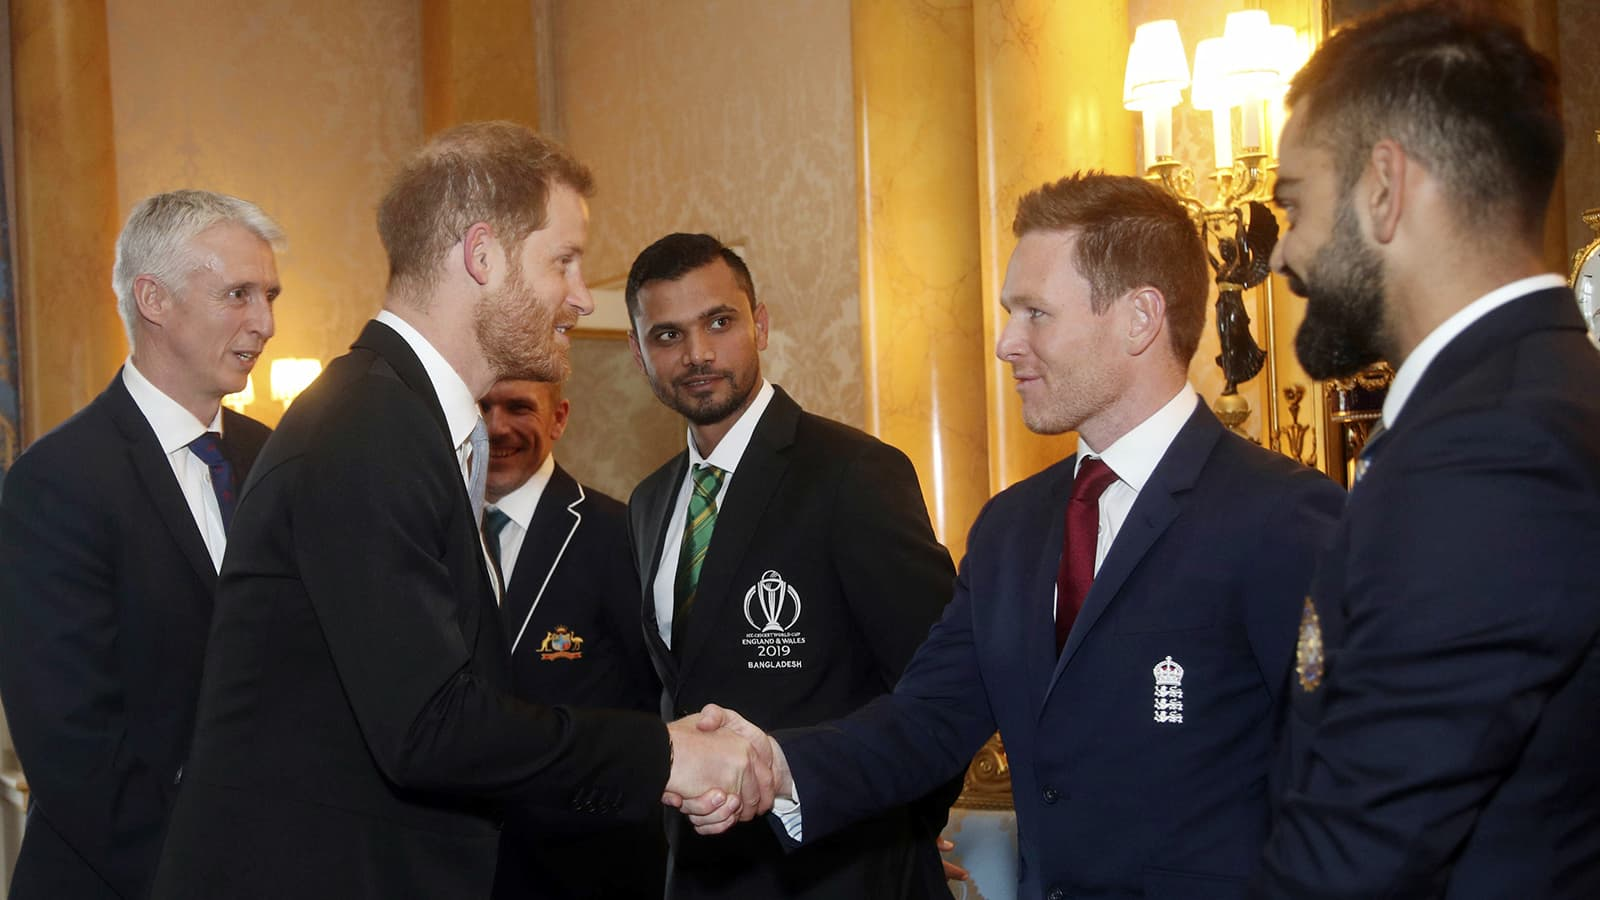 Britain's Prince Harry meets England cricket captain Eoin Morgan, second right, Australia captain Aaron Finch, second left, Bangladesh captain Masrafe Bin Mortaza, centre, and India captain Virat Kohli during a Royal Garden Party at Buckingham Palace in London on May 29. — AP